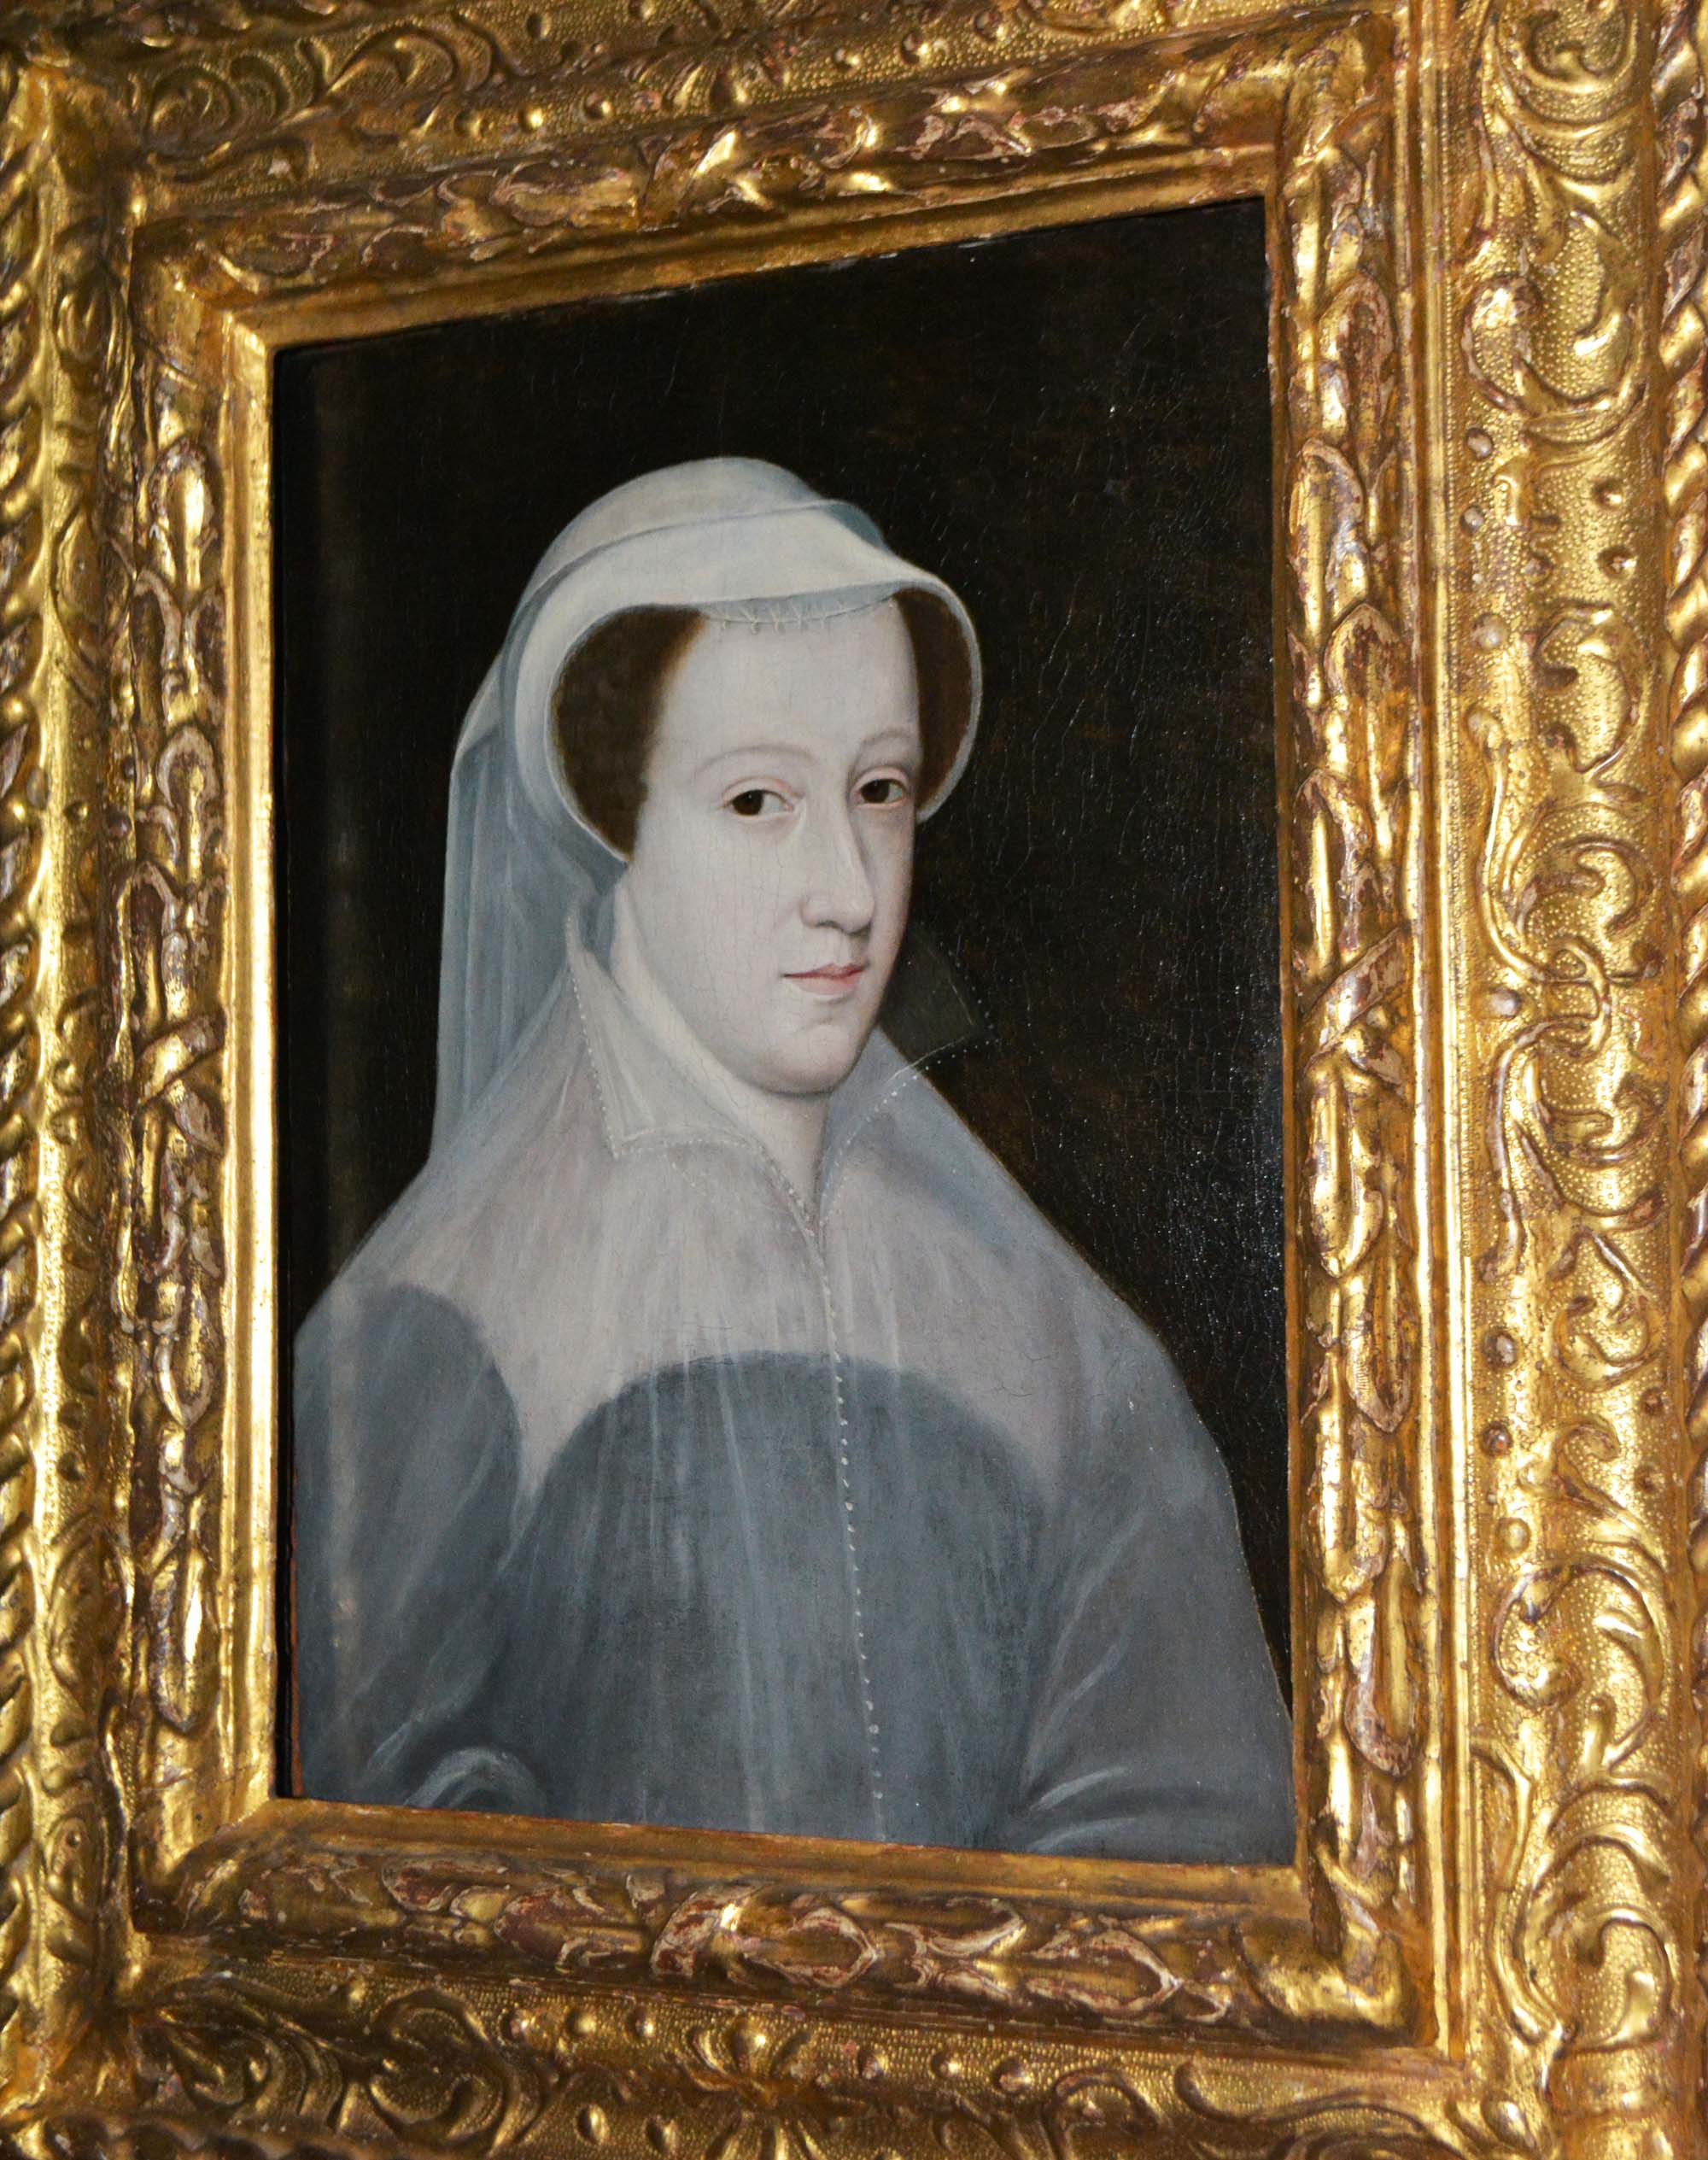 a painted Tudor portrait of Mary Queen of Scots in gilt frame